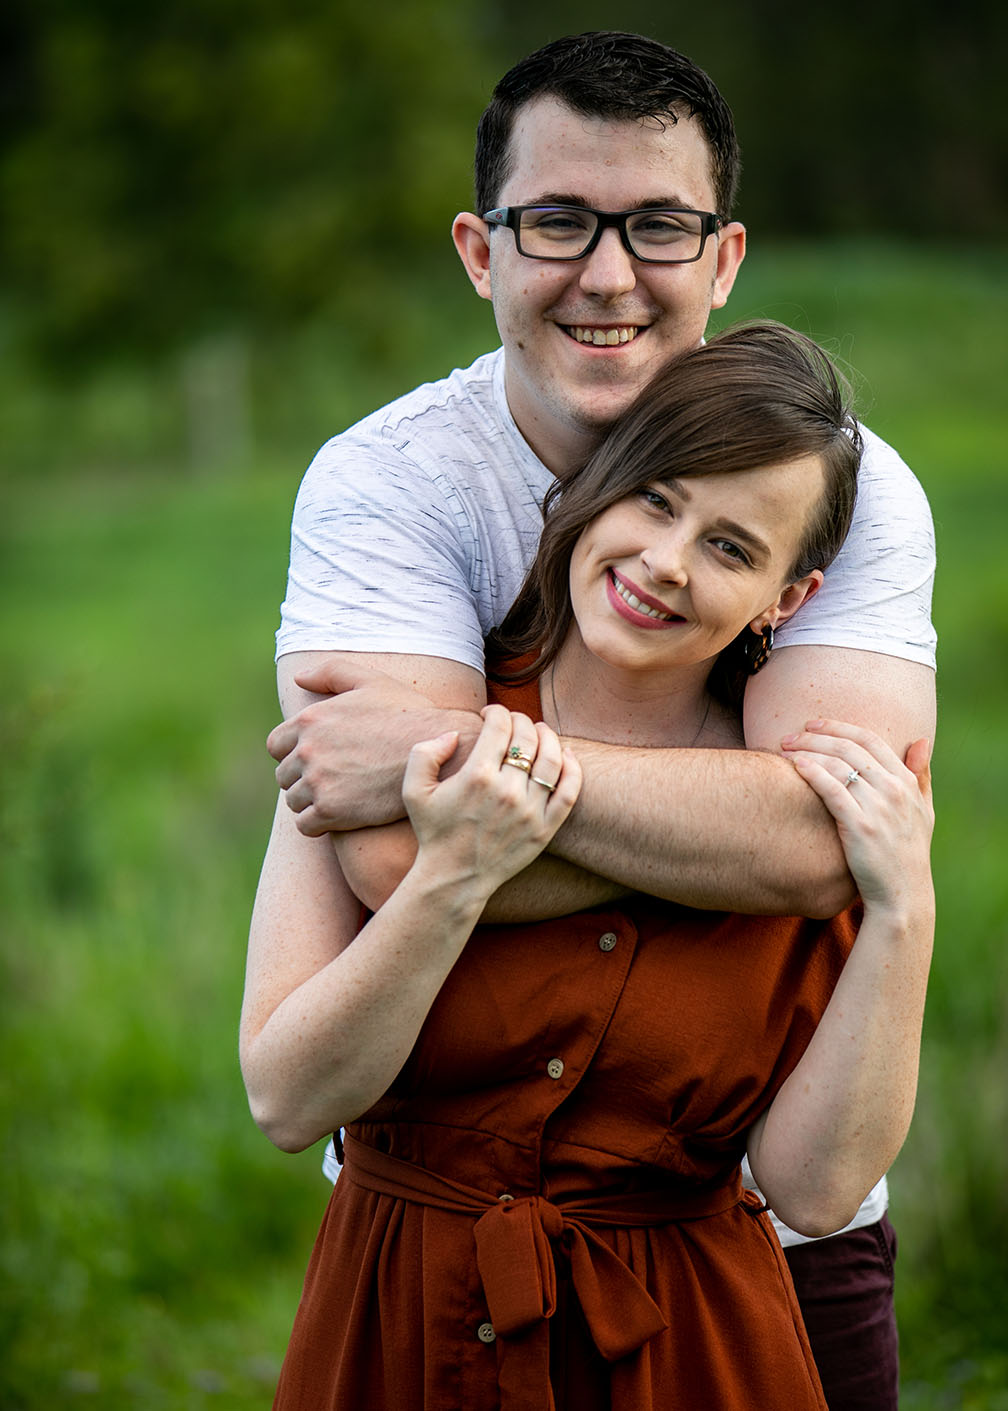 Engagement Shoot - couple cuddling in field